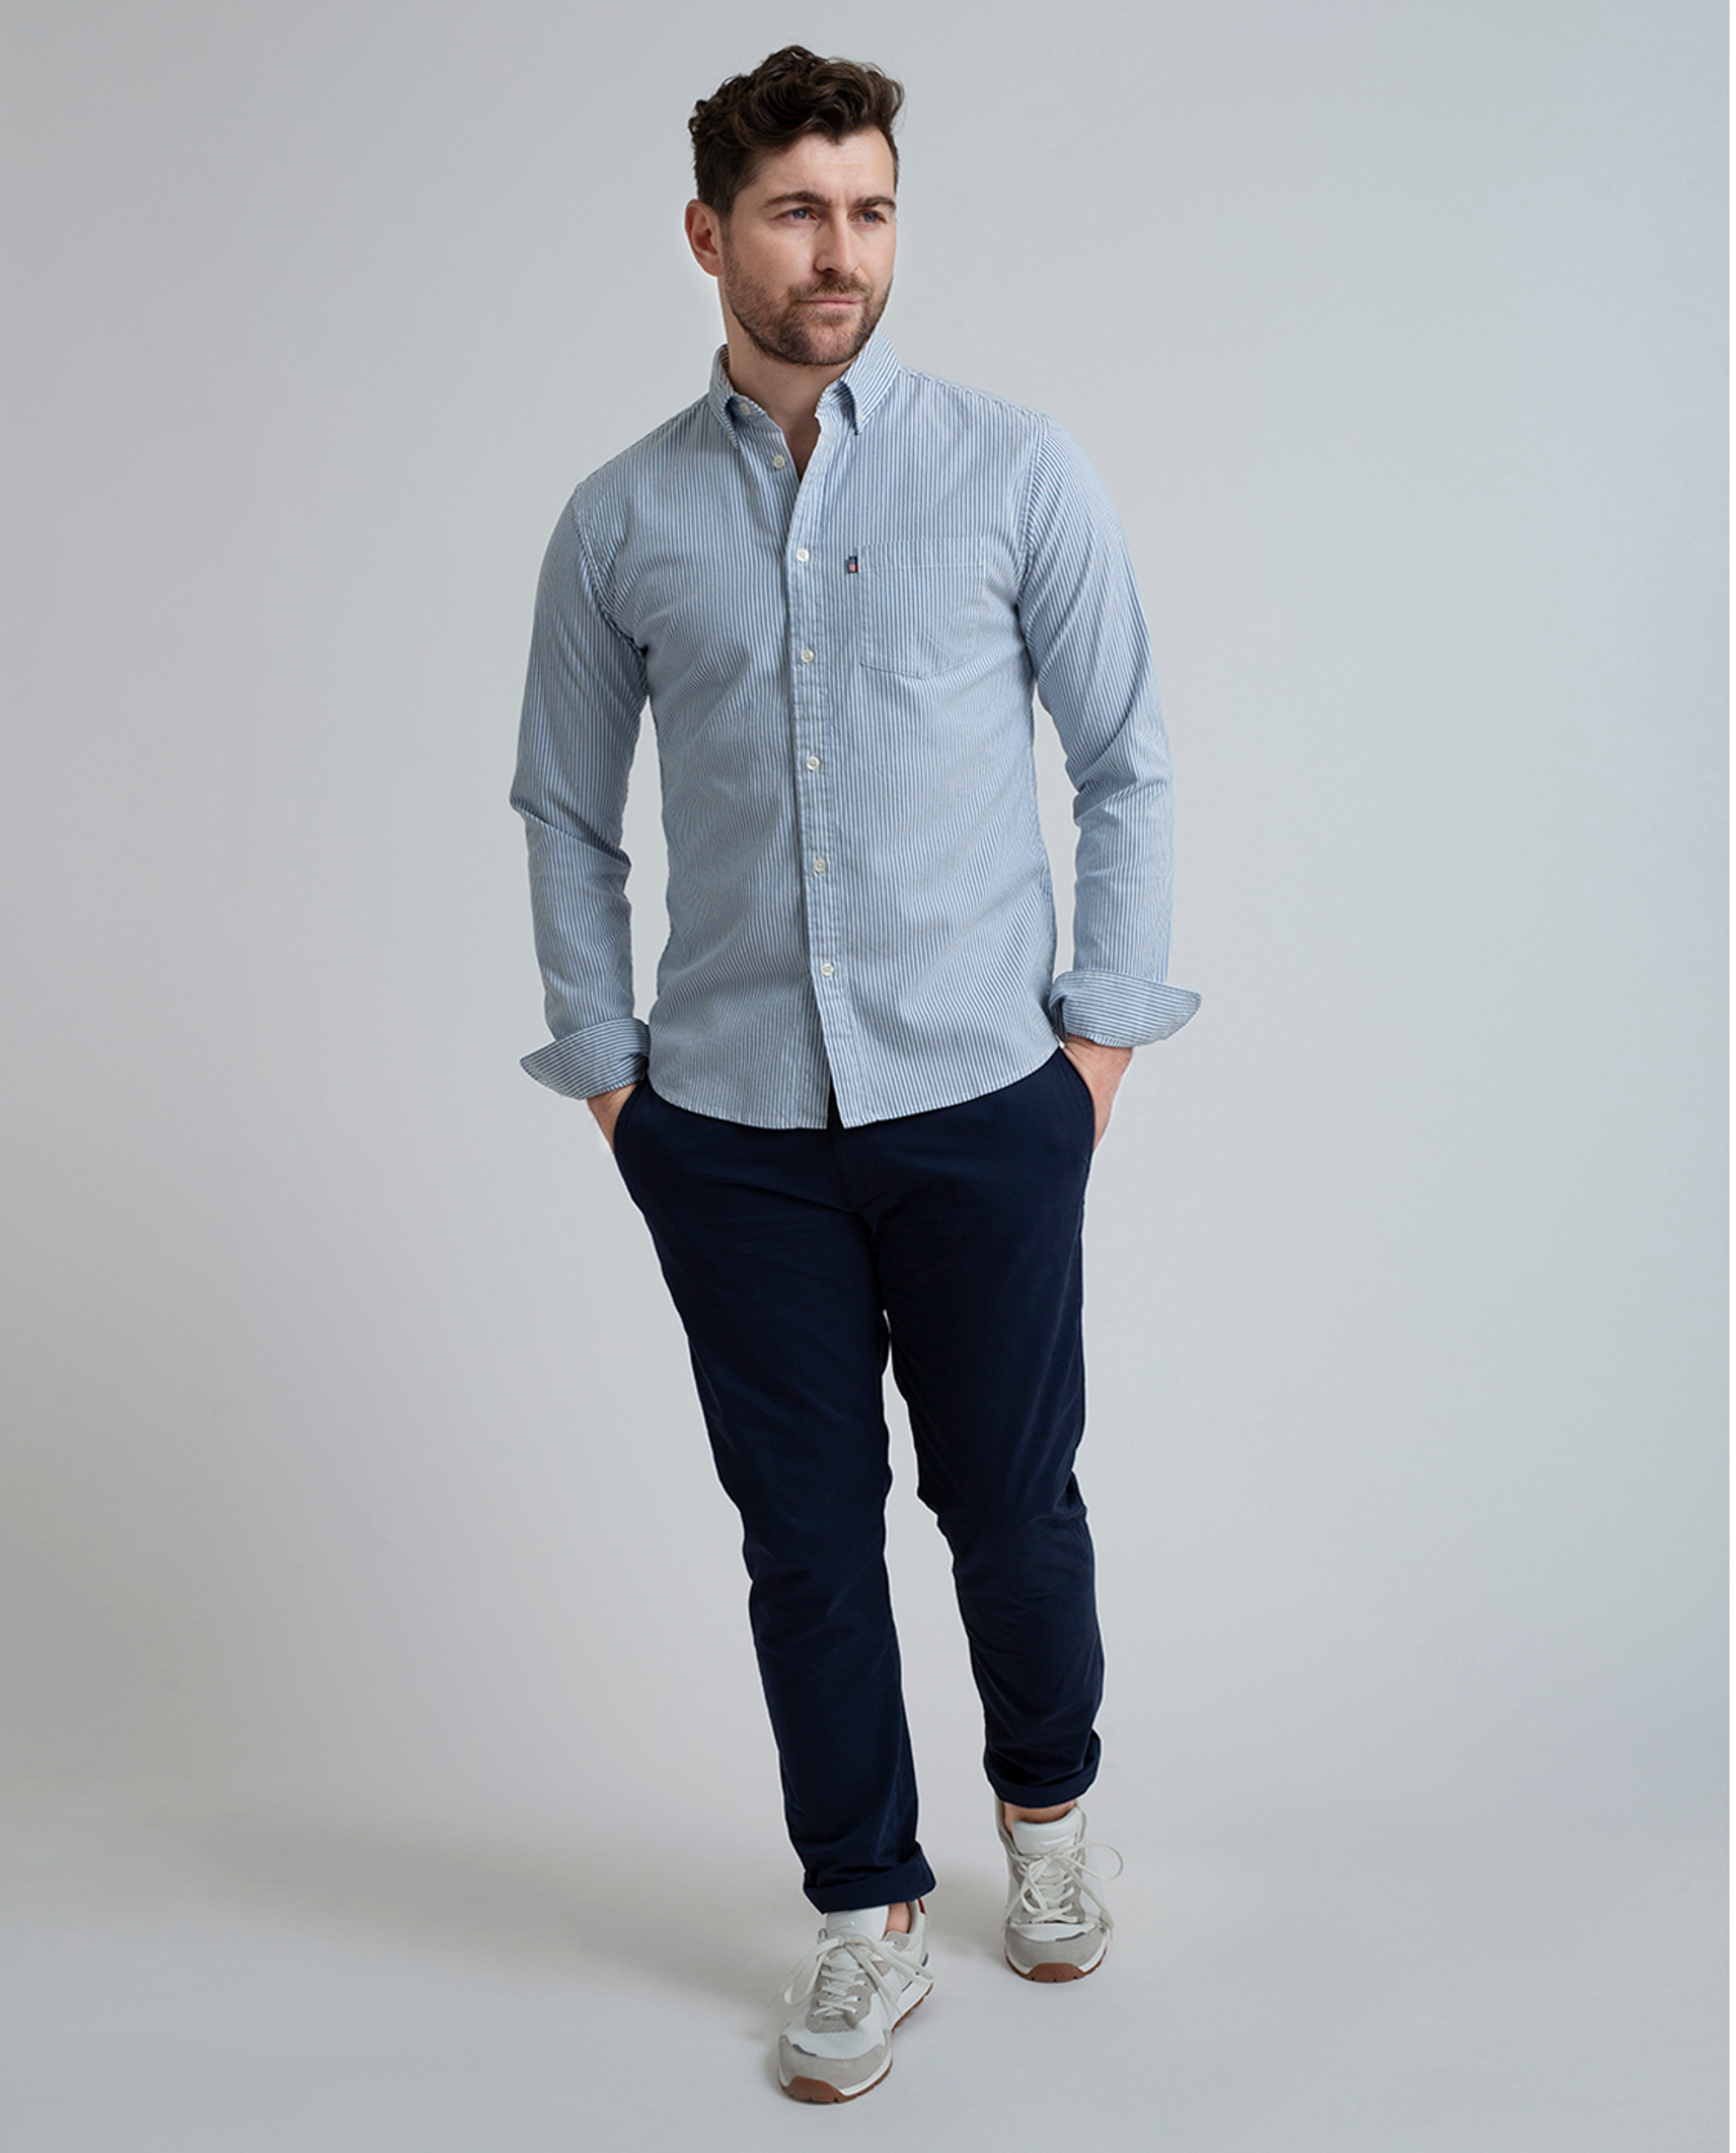 Kyle Oxford Shirt, Classic Blue/White